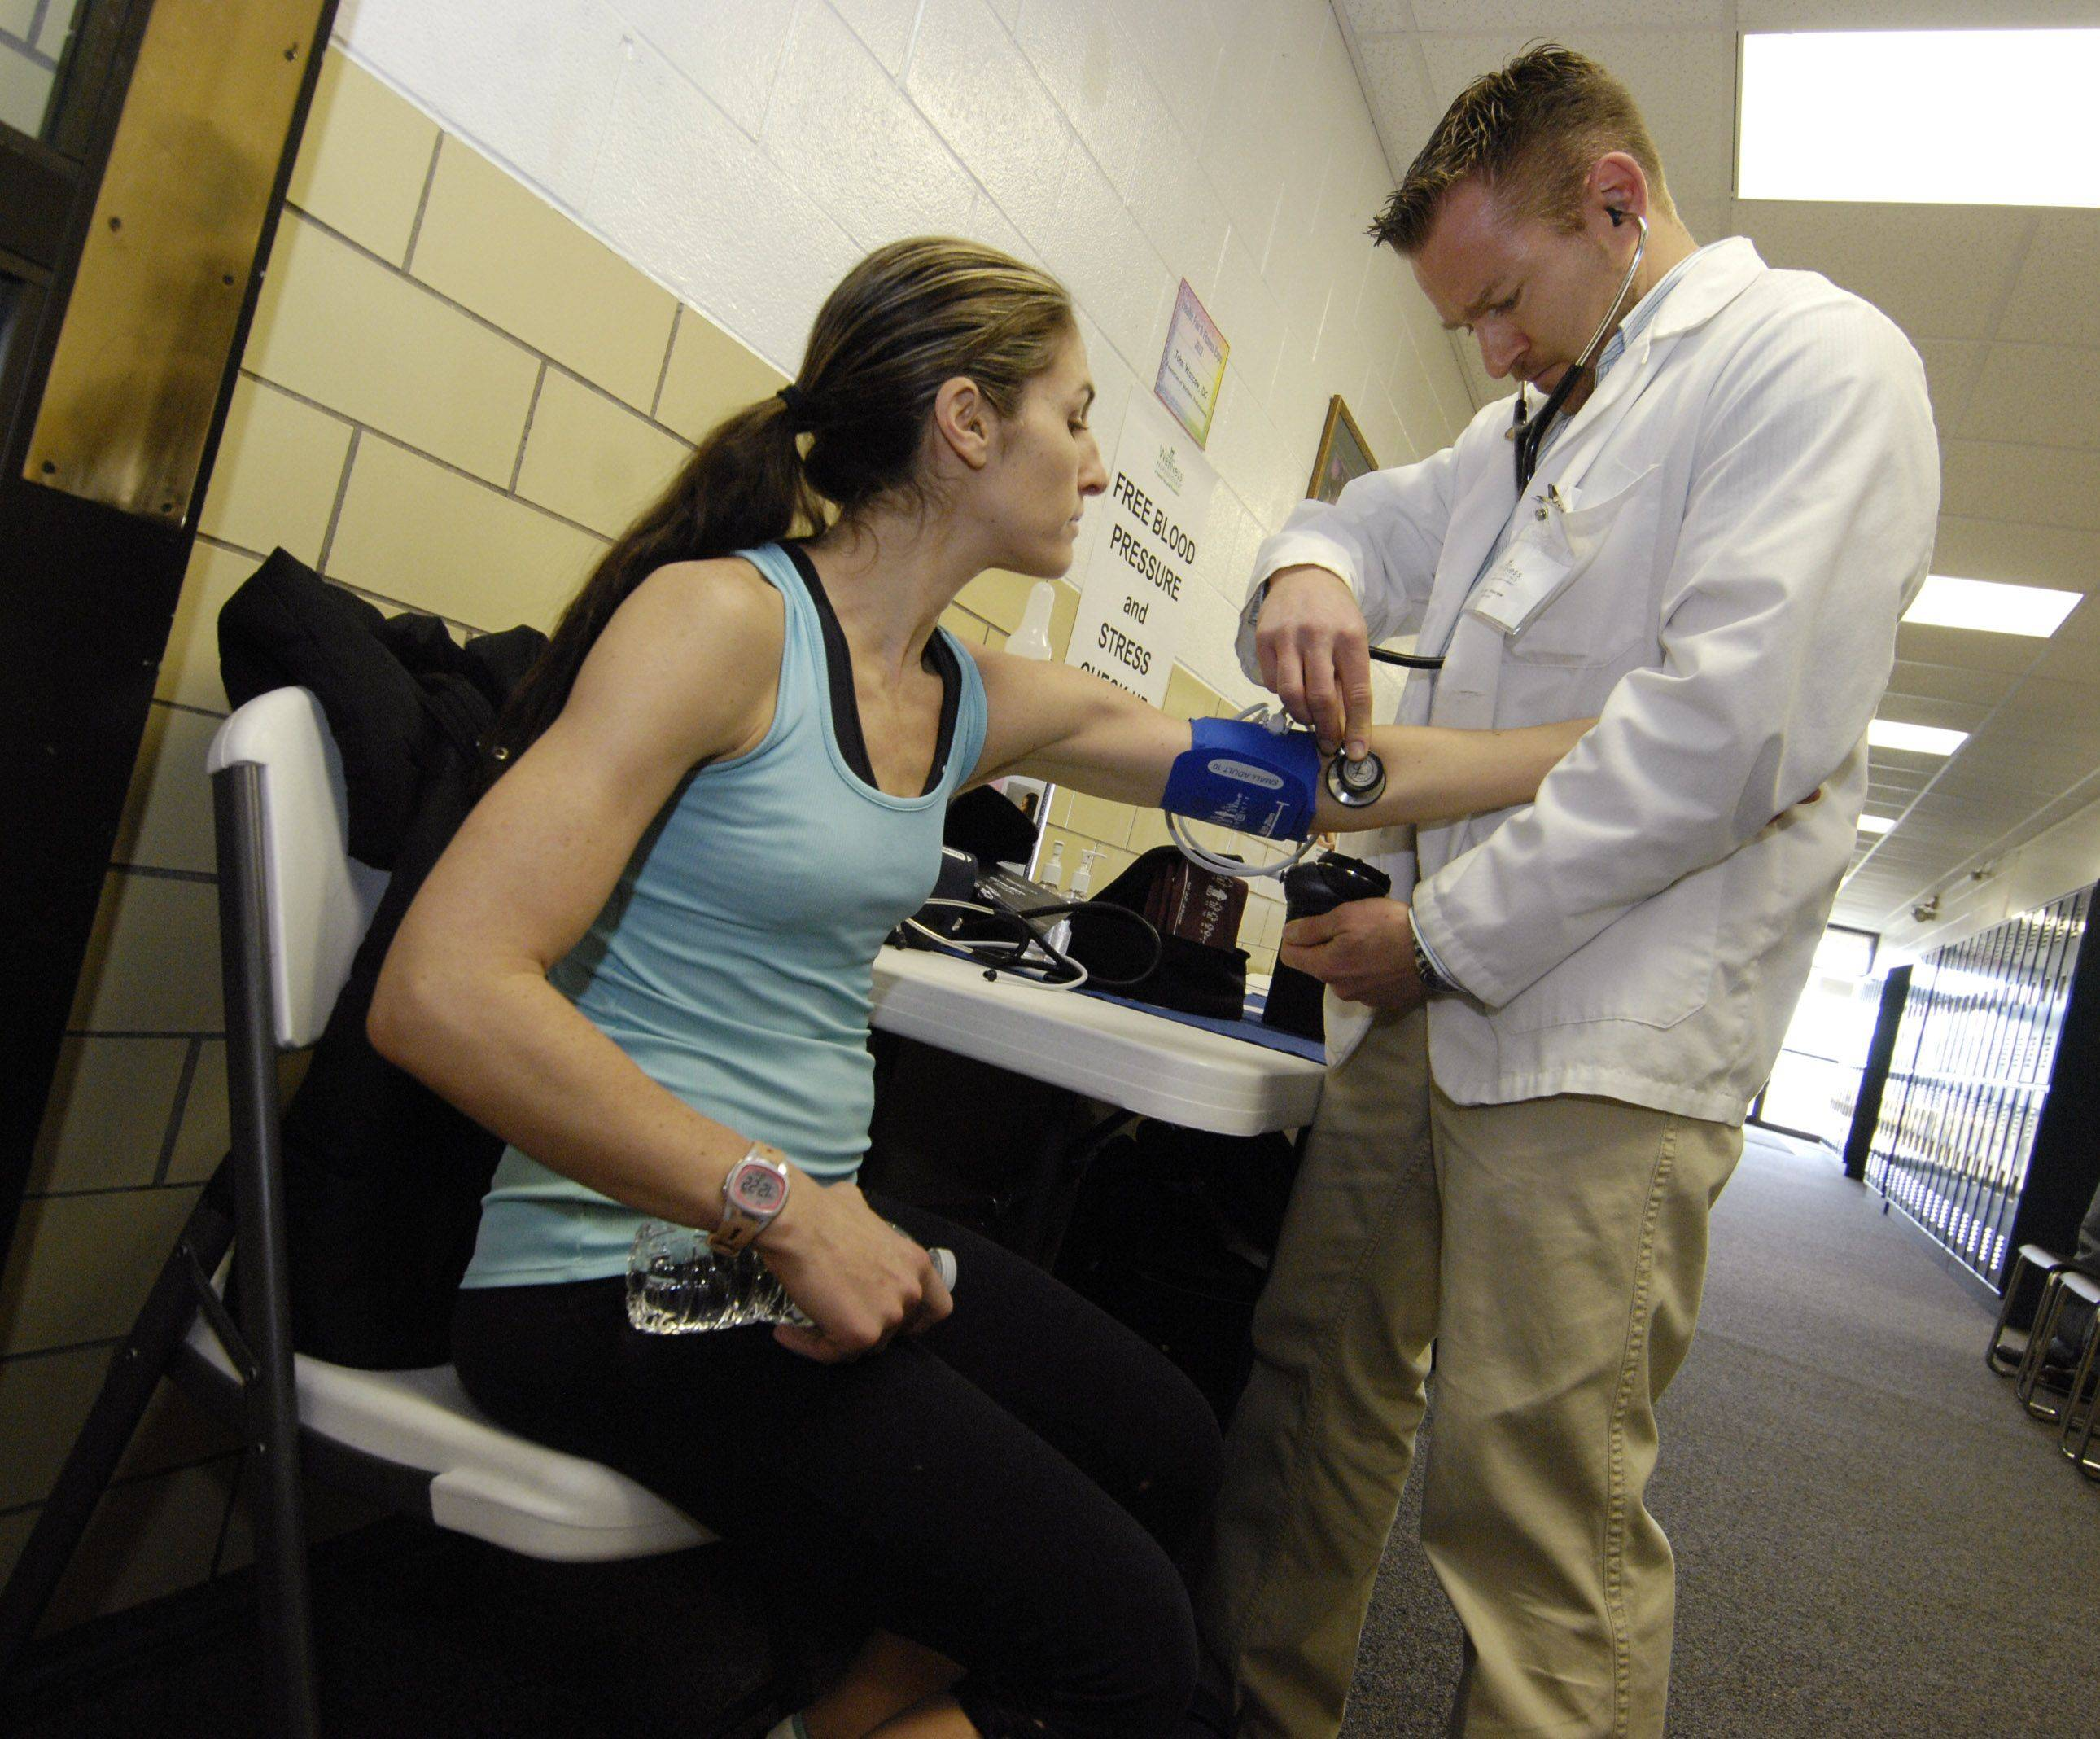 Marisa Bianco of Lombard receives a free blood pressure check from Dr. John Wascow during the 2012 Health Fair and Fitness Expo Sunday at the Sunset Knoll Recreation Center in Lombard.